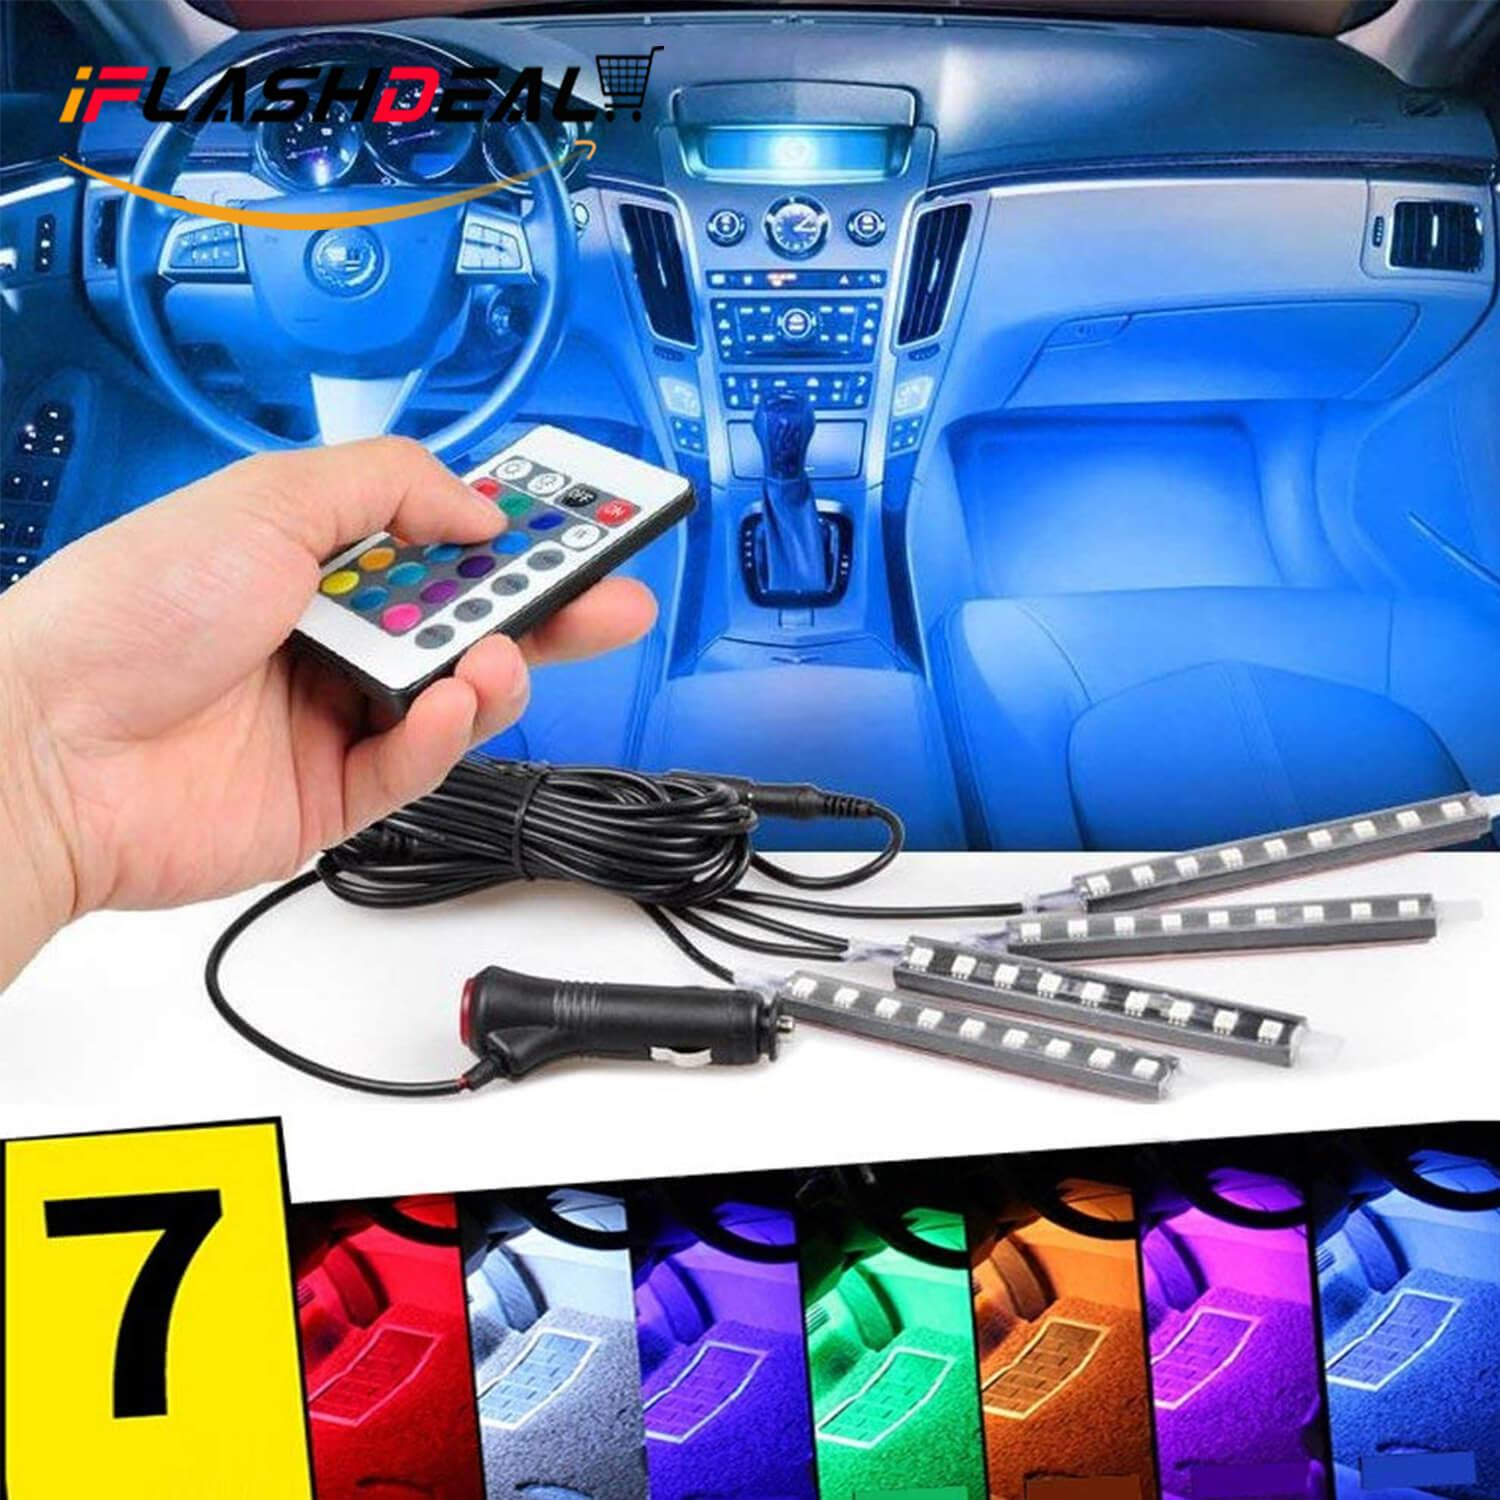 Iflashdeal Car Led Strip Light, 4 Pcs 36 Led Remote Control Multi Color Car Interior Lights Under Dash Lighting Kit By Iflashdeal.